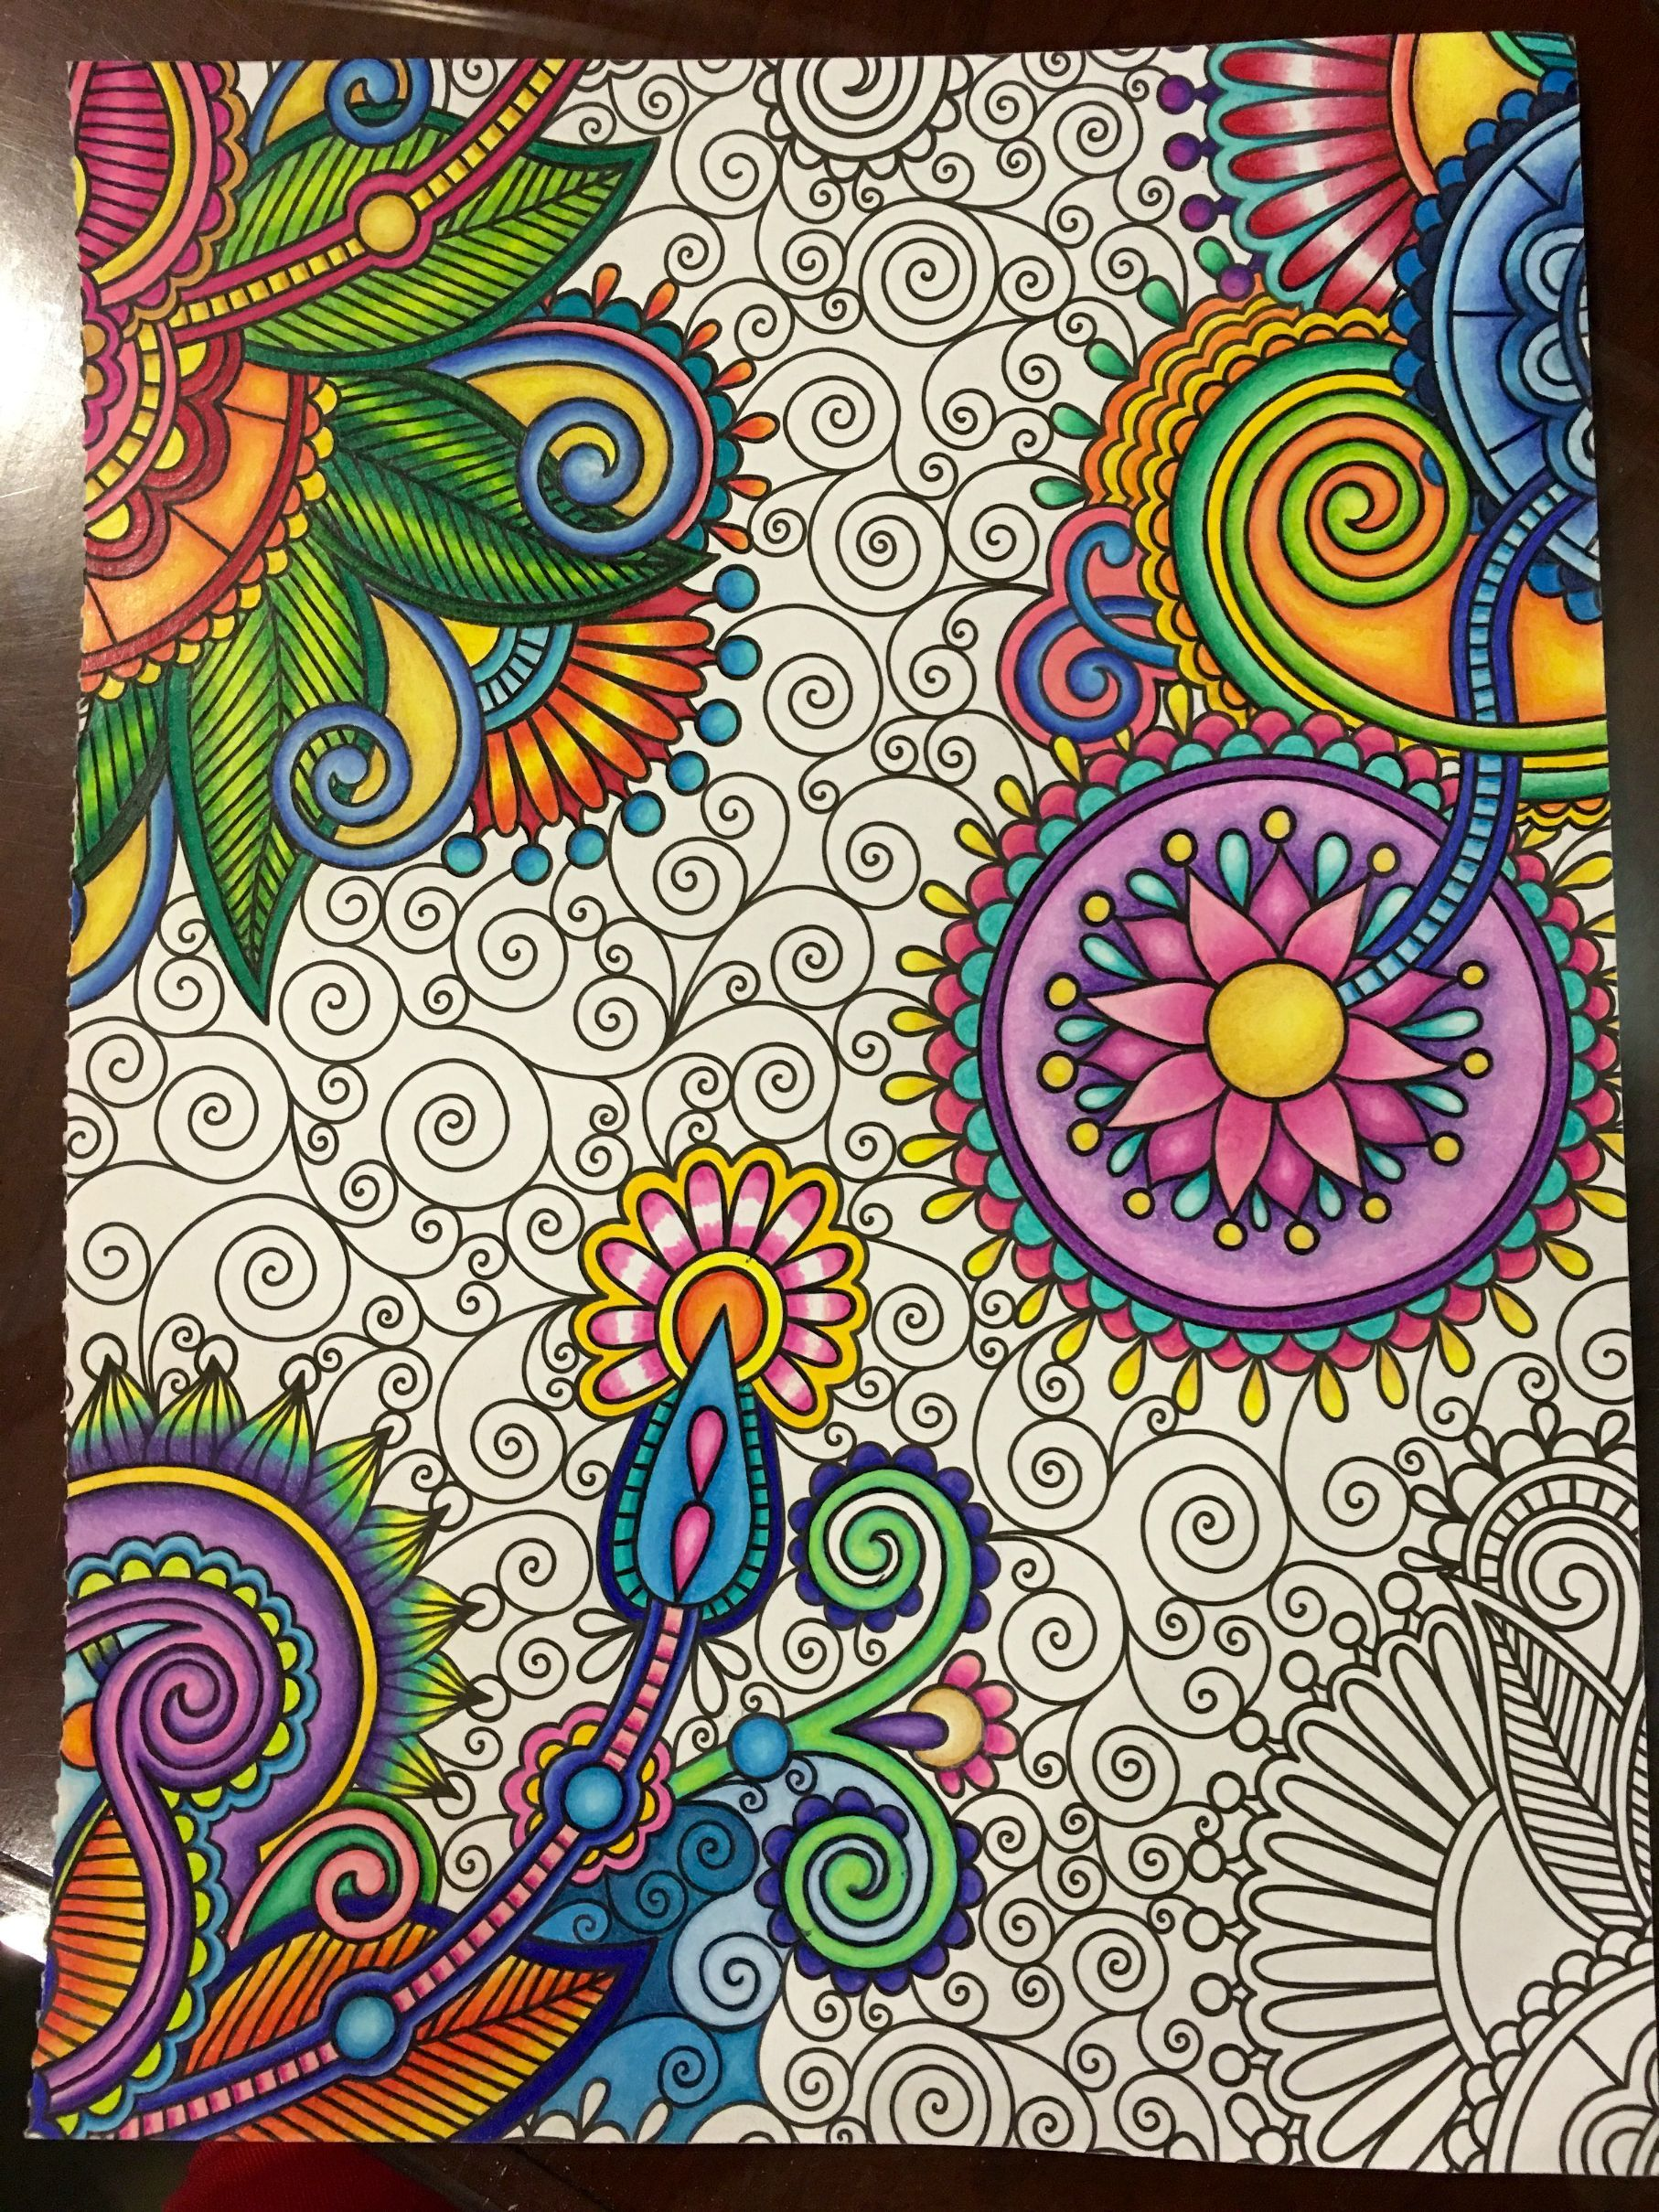 Coloring book color of art - Kaleidoscope Wonders Color Art For Everyone A Coloring Book That Features